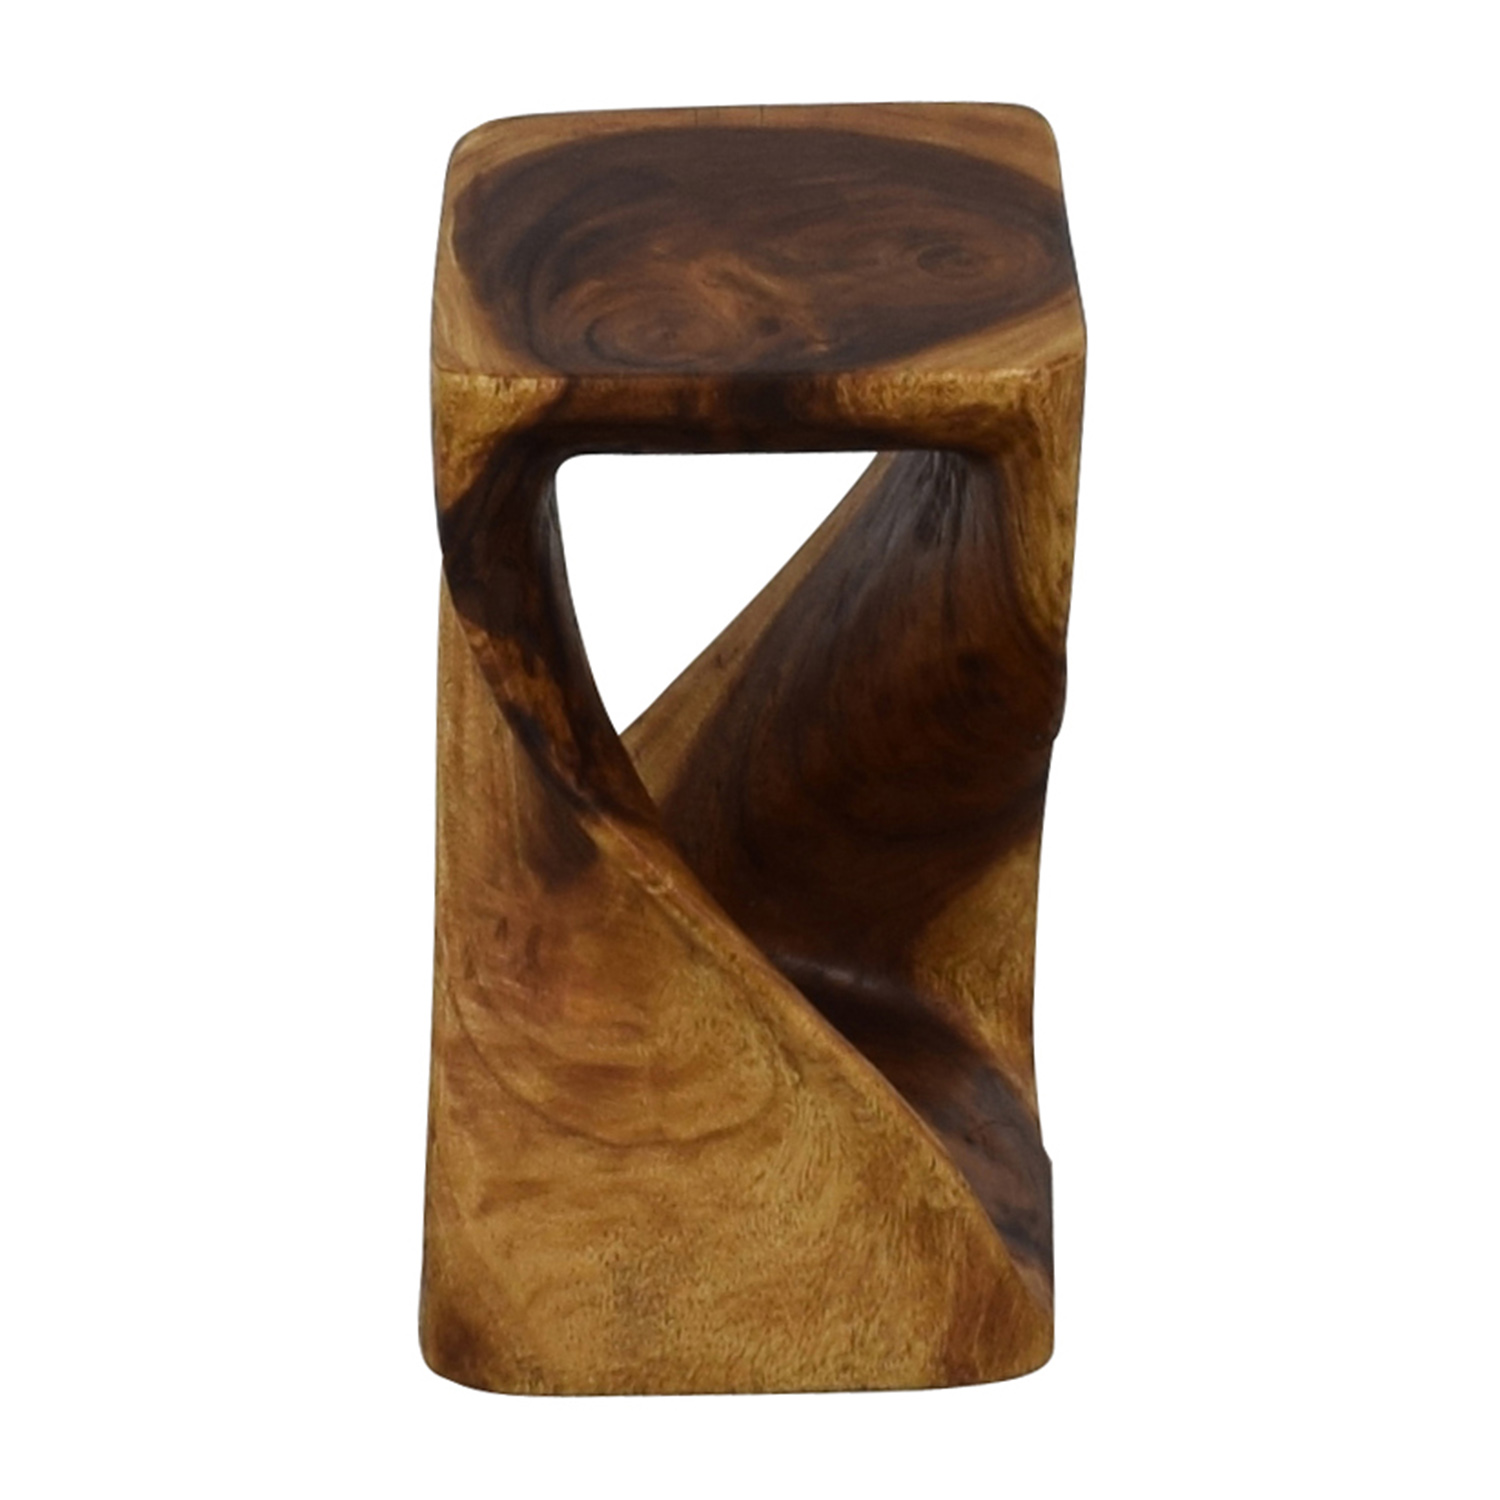 Haussmann Haussmann Hand-carved Walnut Oil Twist Stool price